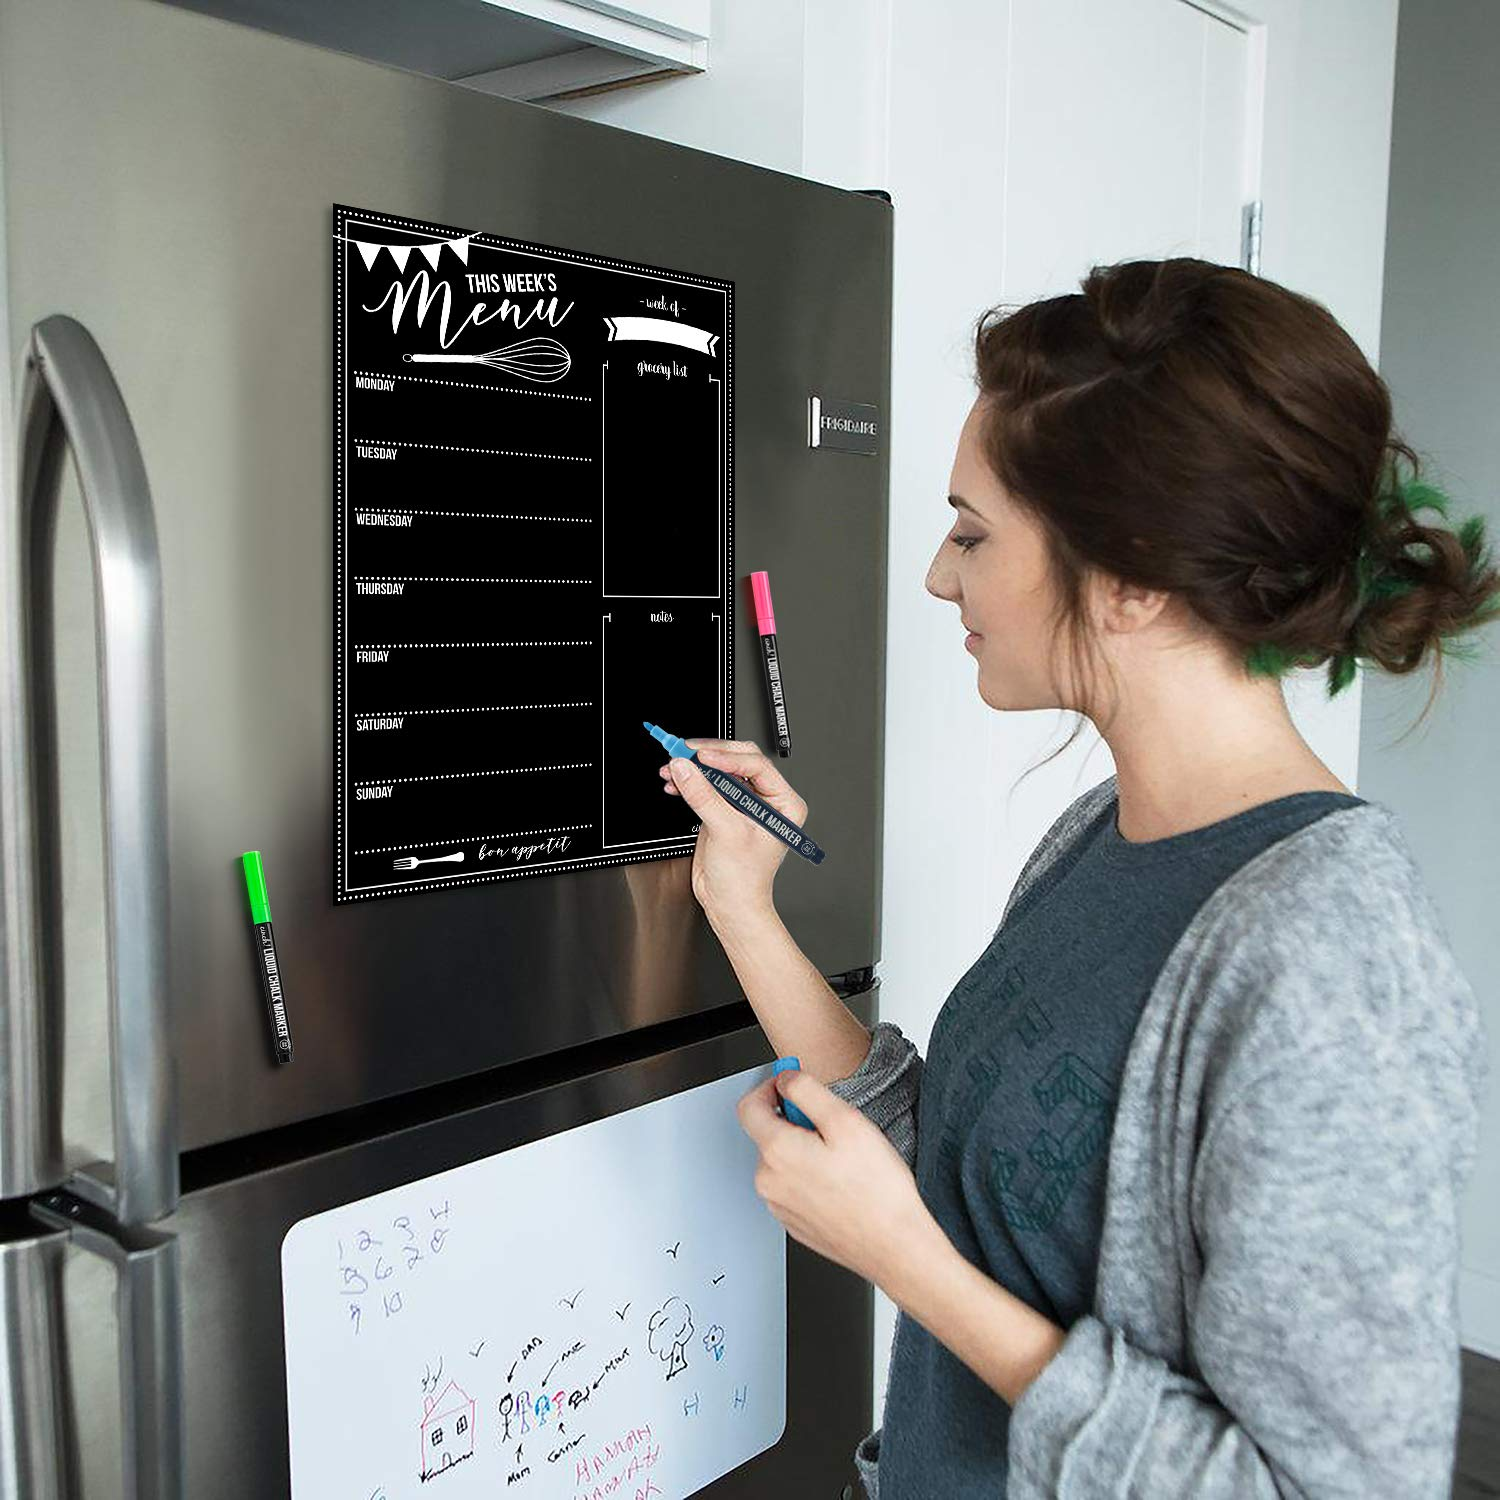 Magnetic Dry Erase Menu Board for Fridge: with Bright Neon Chalk Markers - 16x12'' - Weekly Meal Planner Blackboard and Grocery List Notepad for Kitchen Refrigerator - Whiteboard Chalkboard Magnet by cinch! (Image #1)